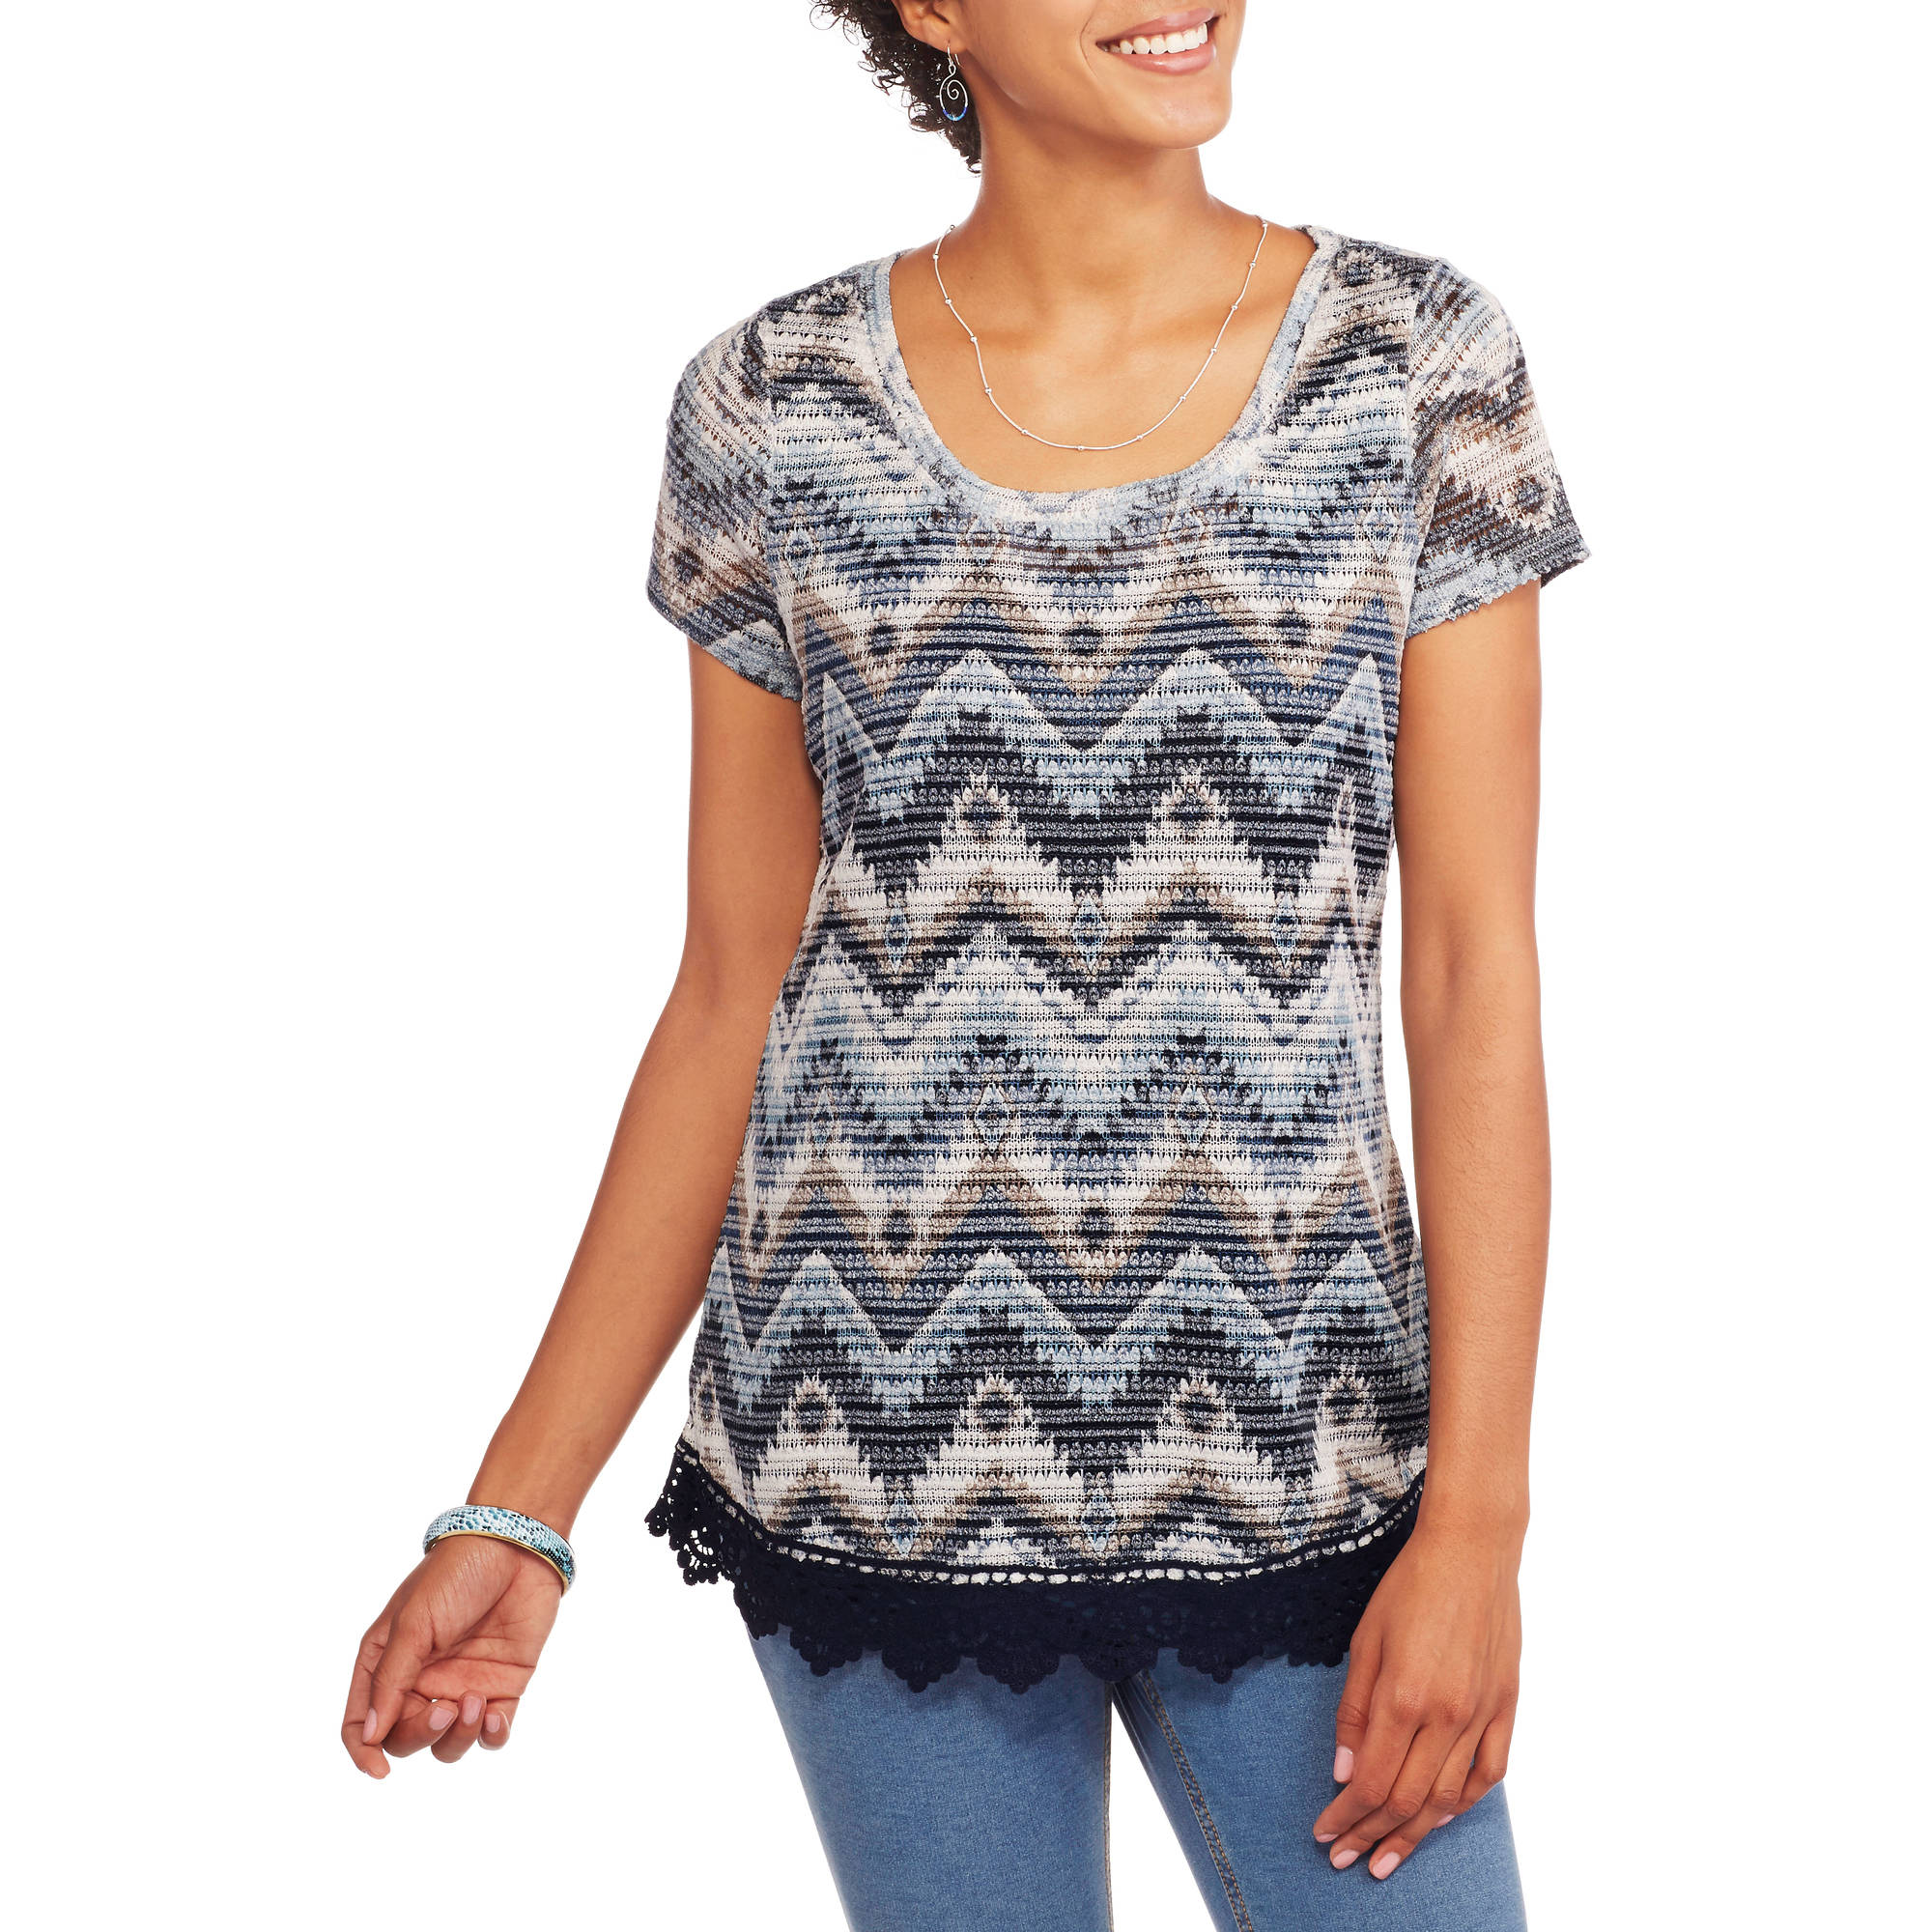 Absolutely Famous Women's Textured 2fer Top with Crochet Trim